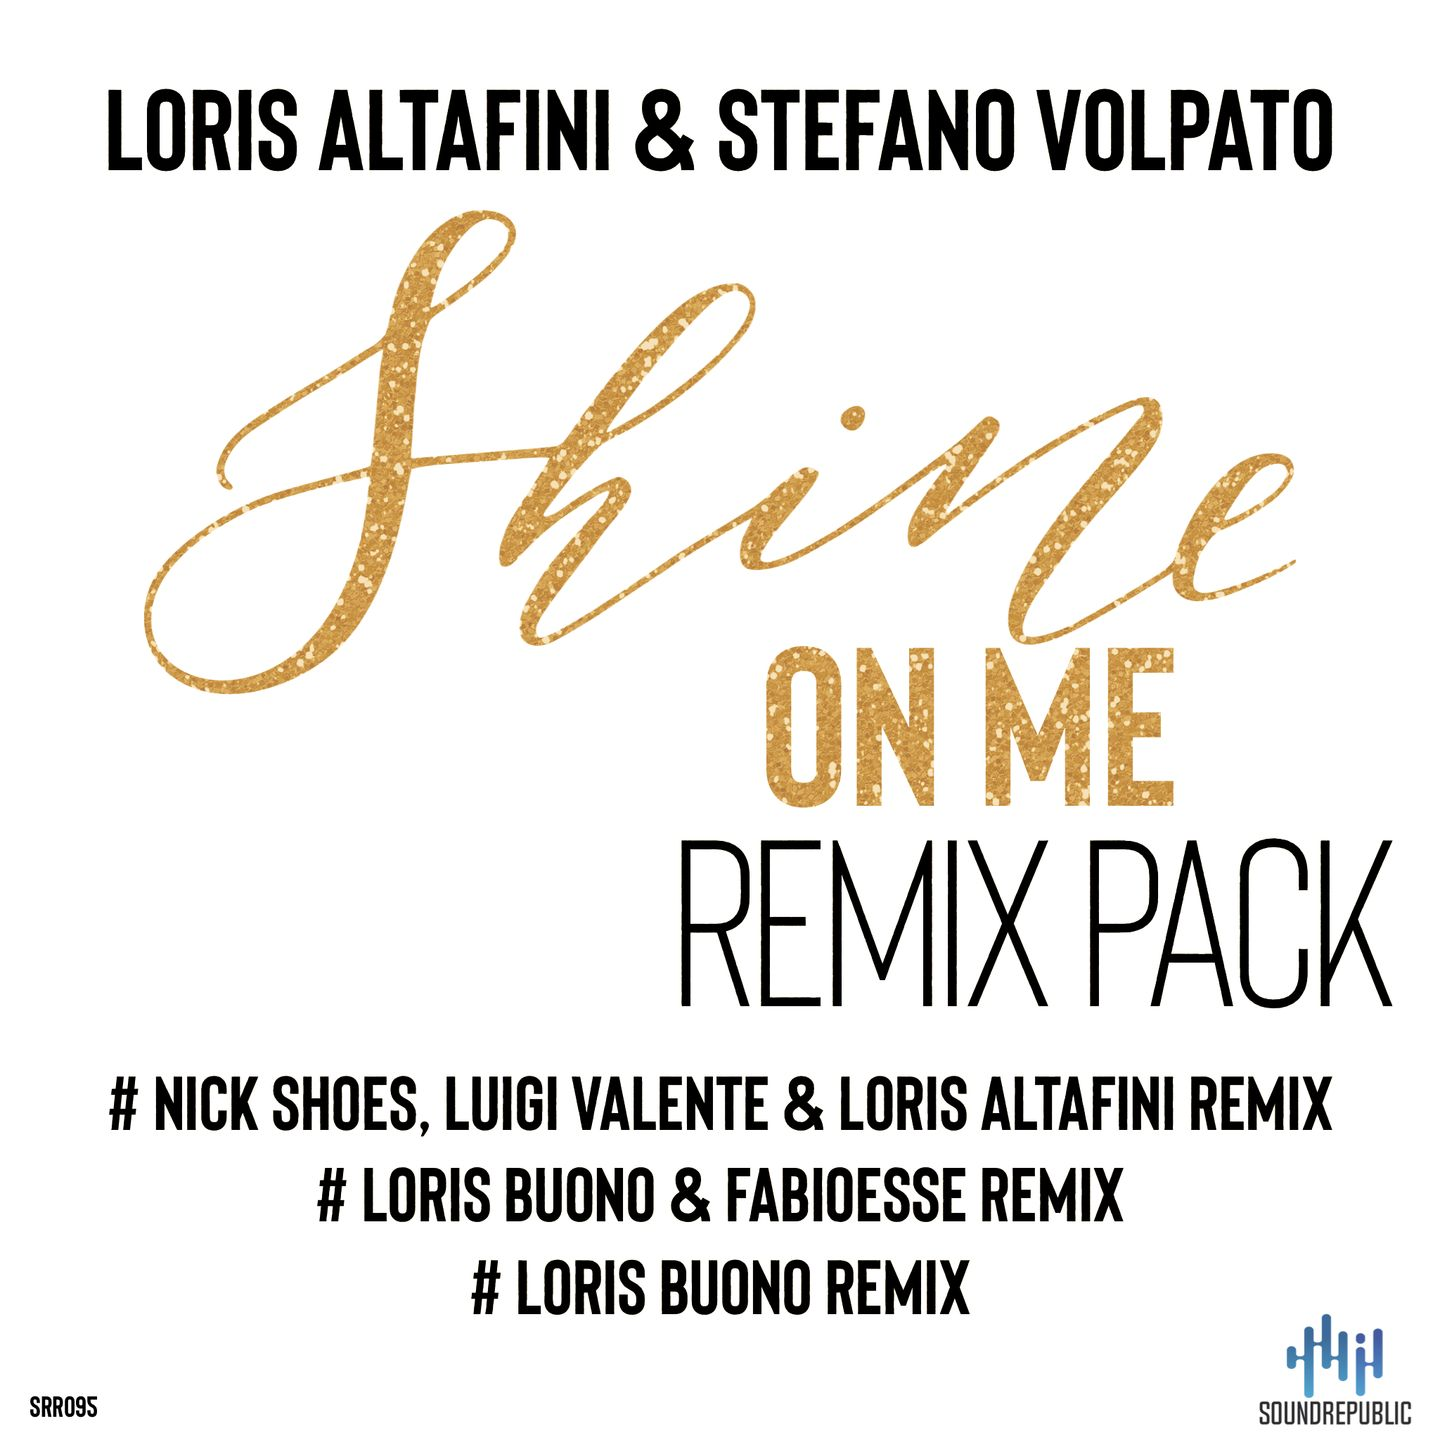 shine on me remix